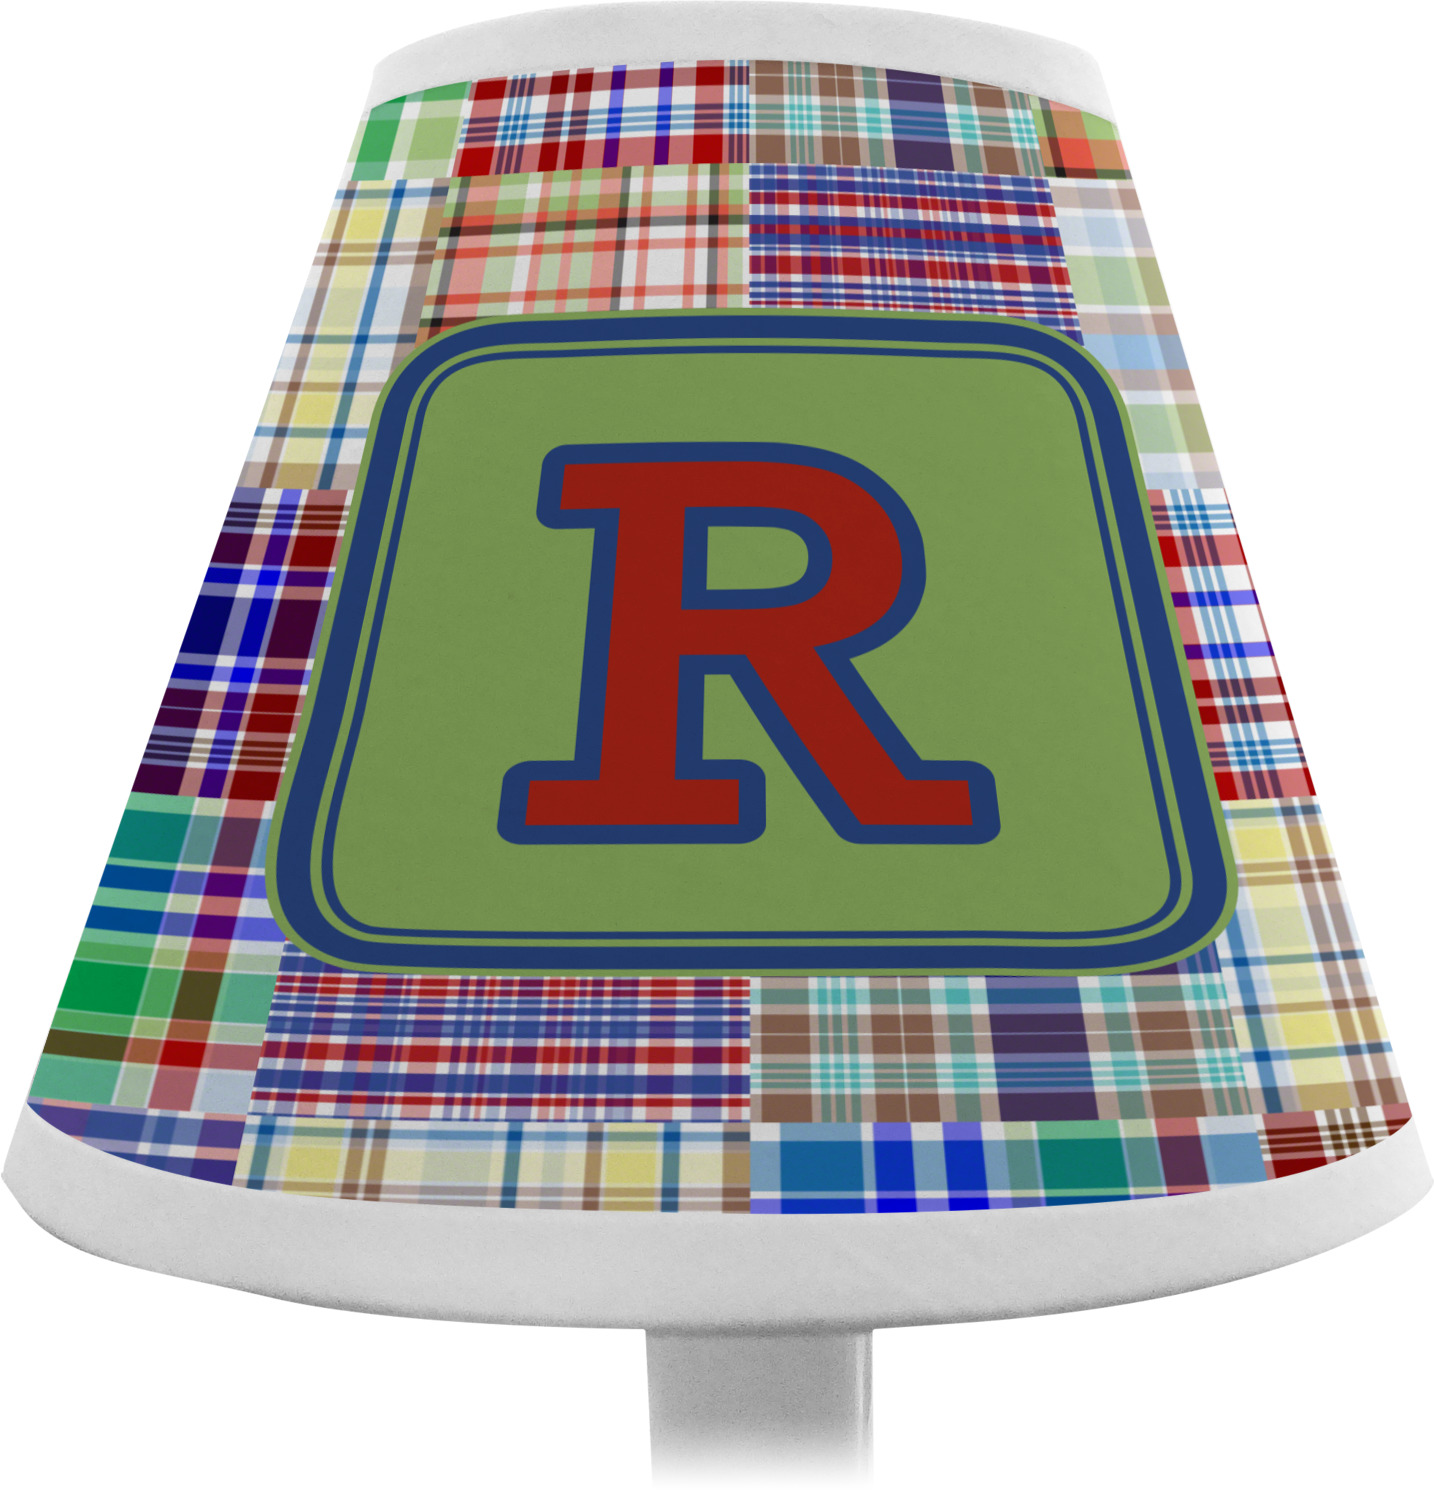 Blue madras plaid print chandelier lamp shade personalized blue madras plaid chandelier lamp shade personalized aloadofball Image collections